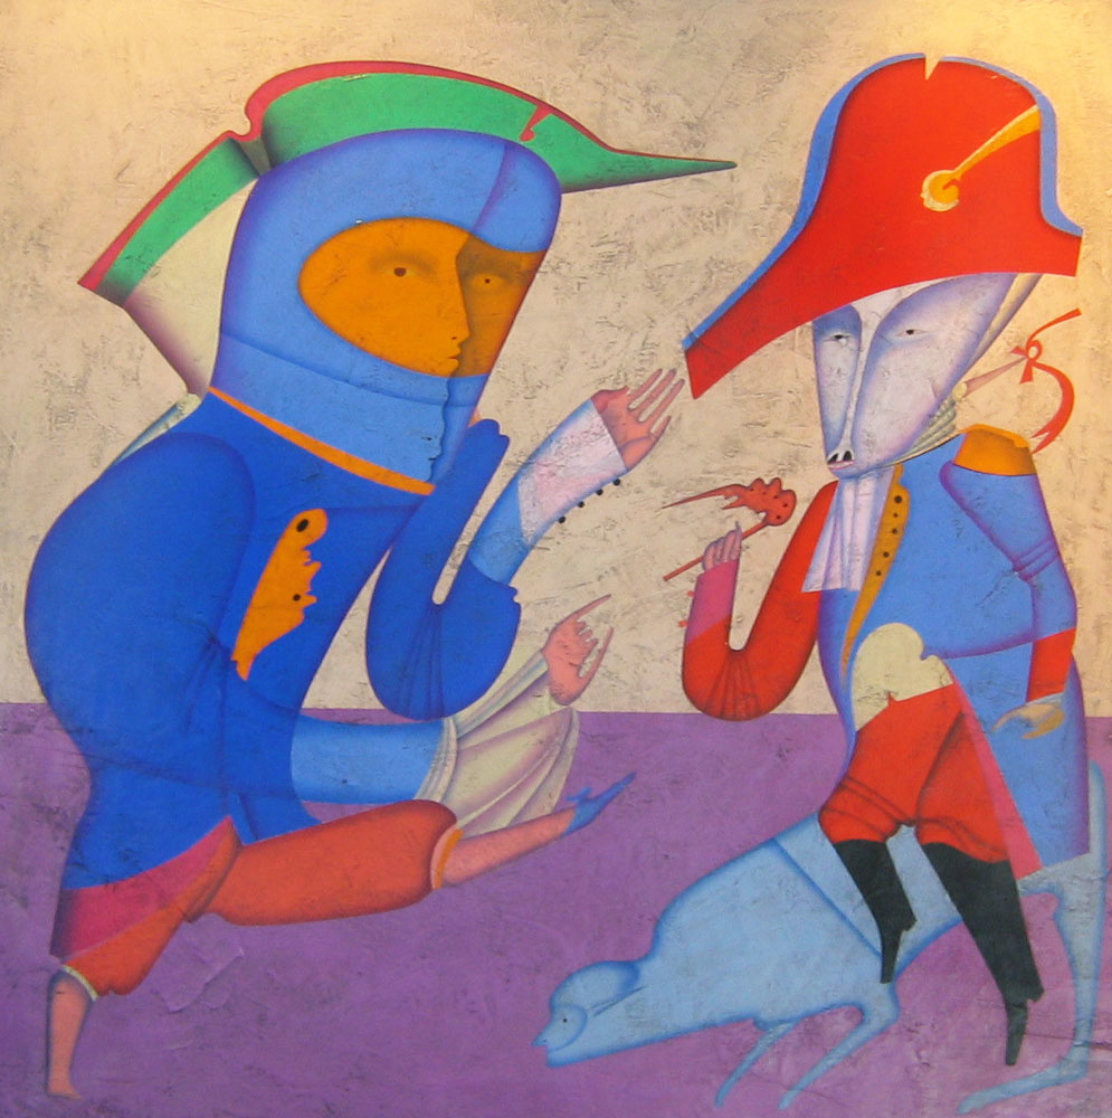 Two Generals 1978 52x52 Super Huge Original Painting by Mihail Chemiakin